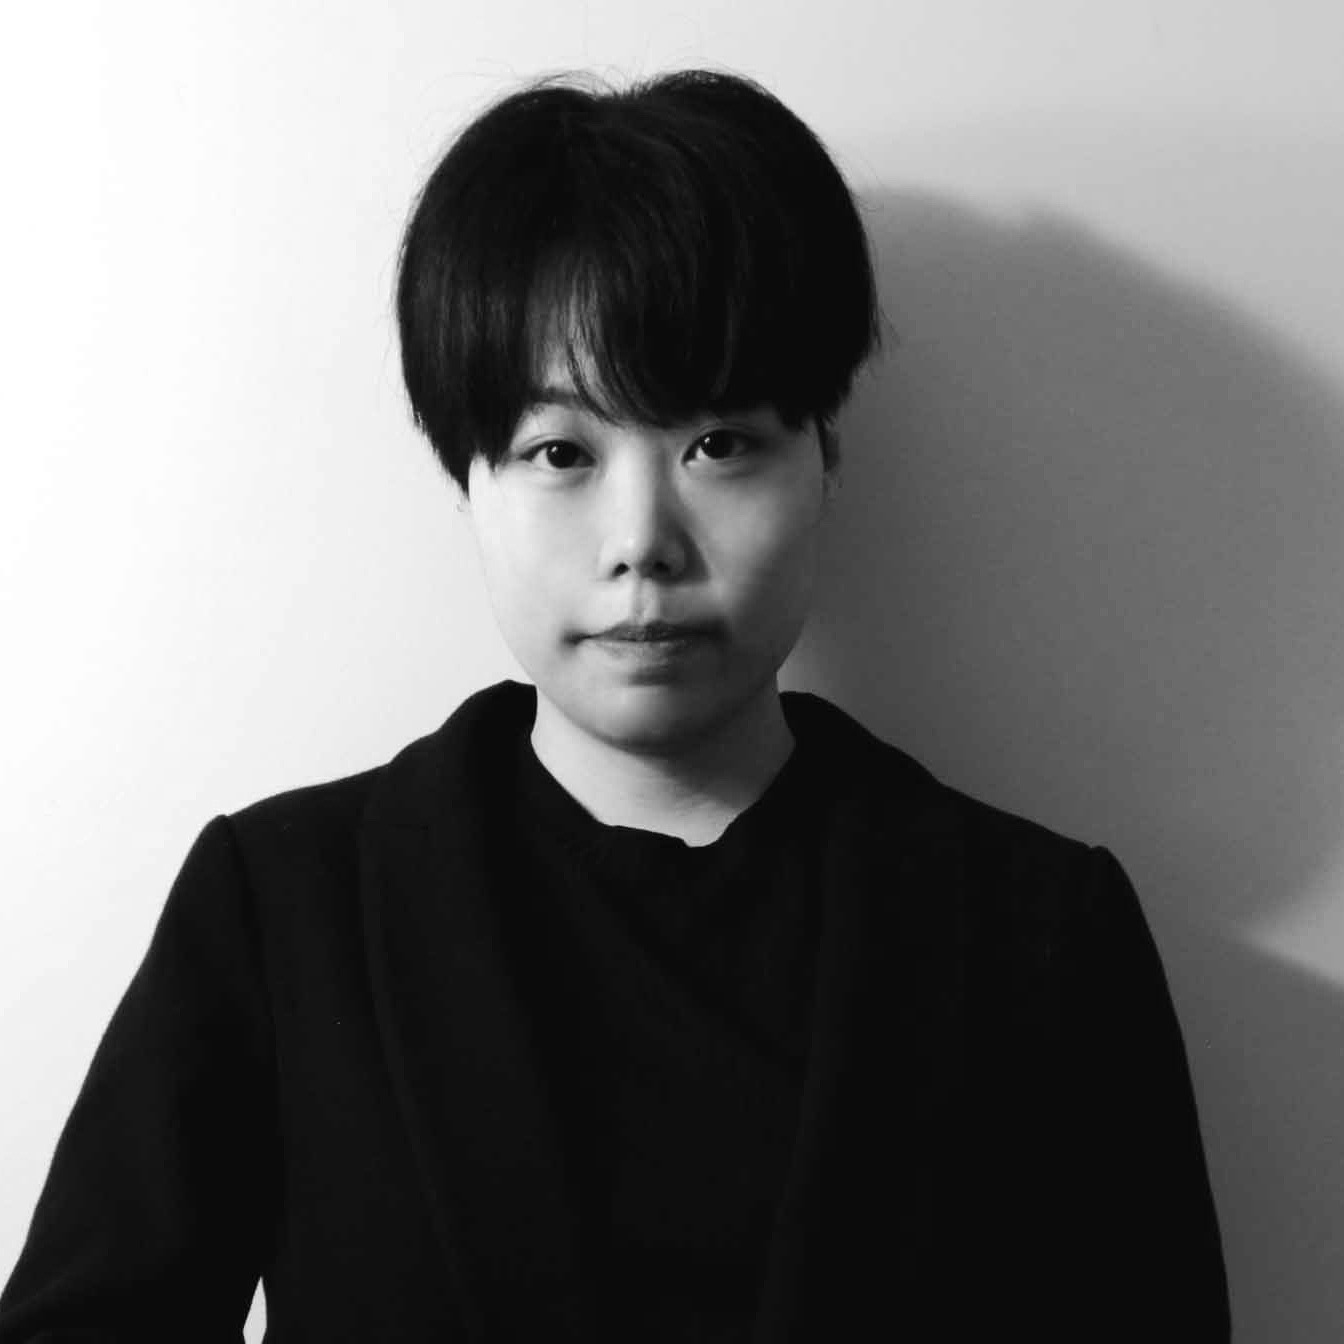 Kyla Chung  is a visual artist, born in Seoul, South Korea. She graduated from Ontario College of Art and Design University (OCAD University), receiving her BFA in Drawing and Painting in 2017. She was awarded the Frederick Hagan Passion in Paint Award at the OCAD Graduation Exhibition. Now she is based in Saint John, New Brunswick, and works both in oil and digital media, including animations.